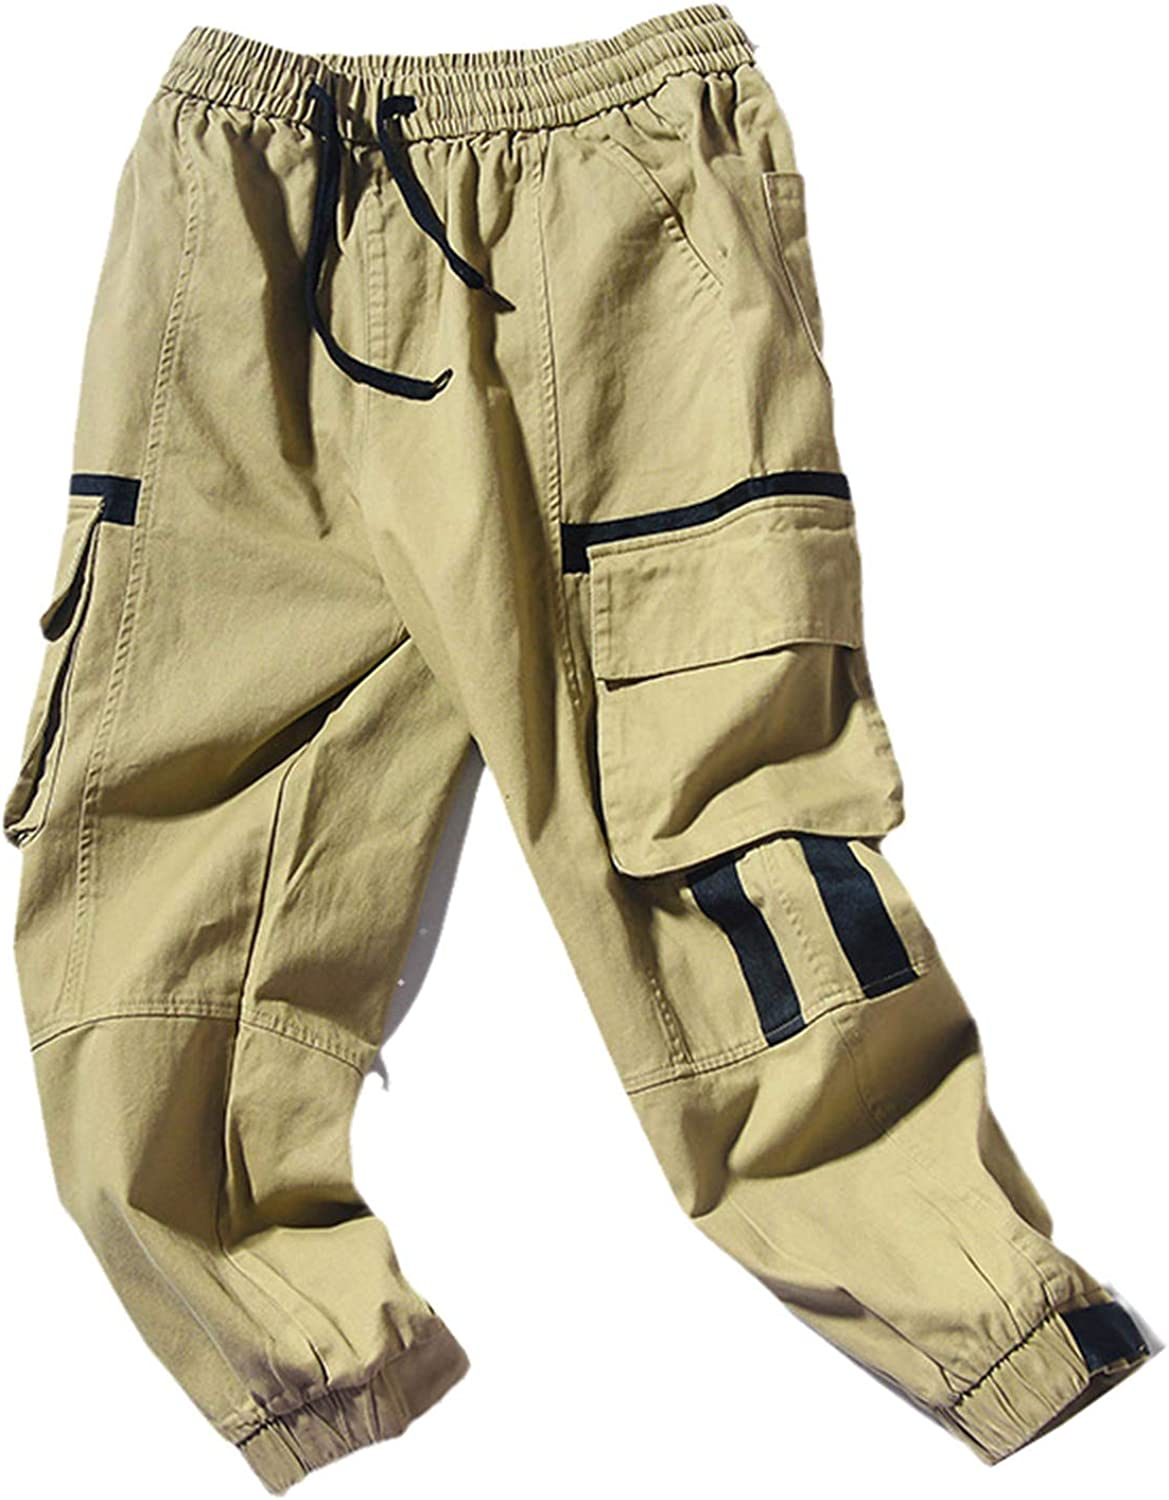 USTZFTBCL Men's Cargo Pants Opening large release sale Fashion Slim Men Free shipping anywhere in the nation Fit Trousers Trend